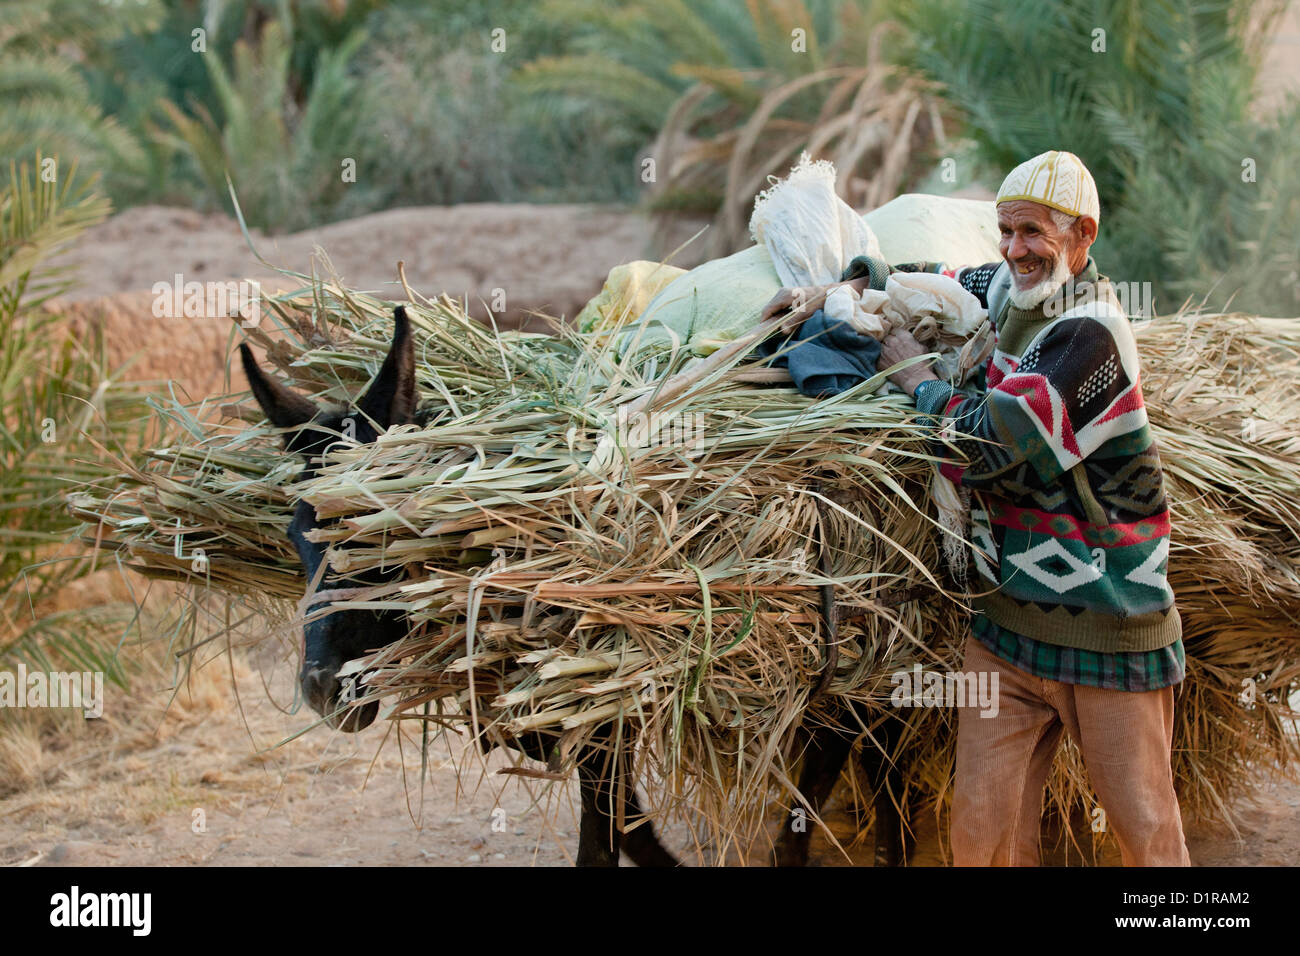 Man carrying donkey immagini & man carrying donkey fotos stock alamy